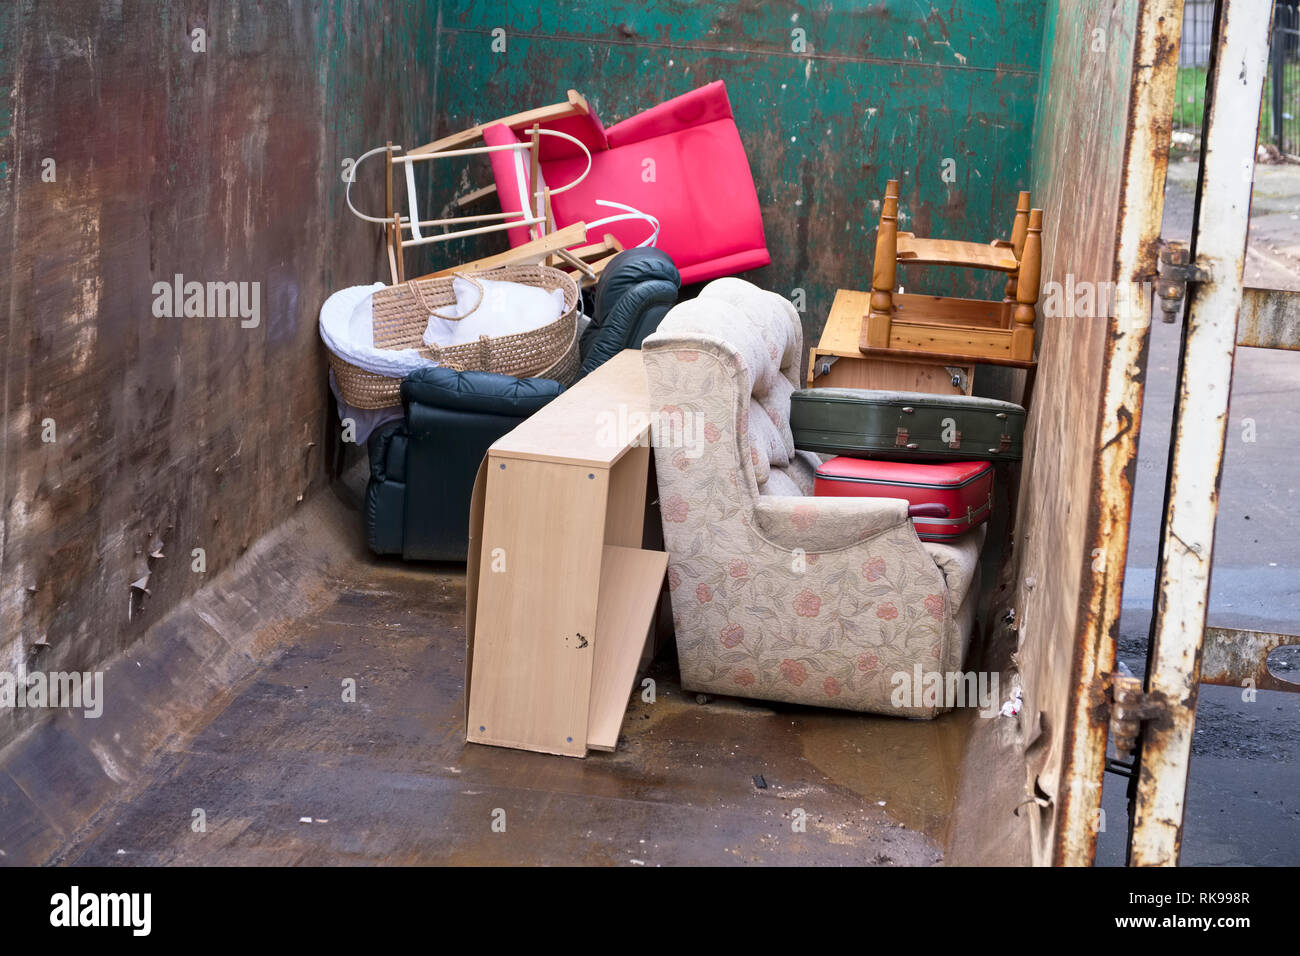 Recycle Furniture Old Furniture And Chairs Rubbish In Steel Container For Charity